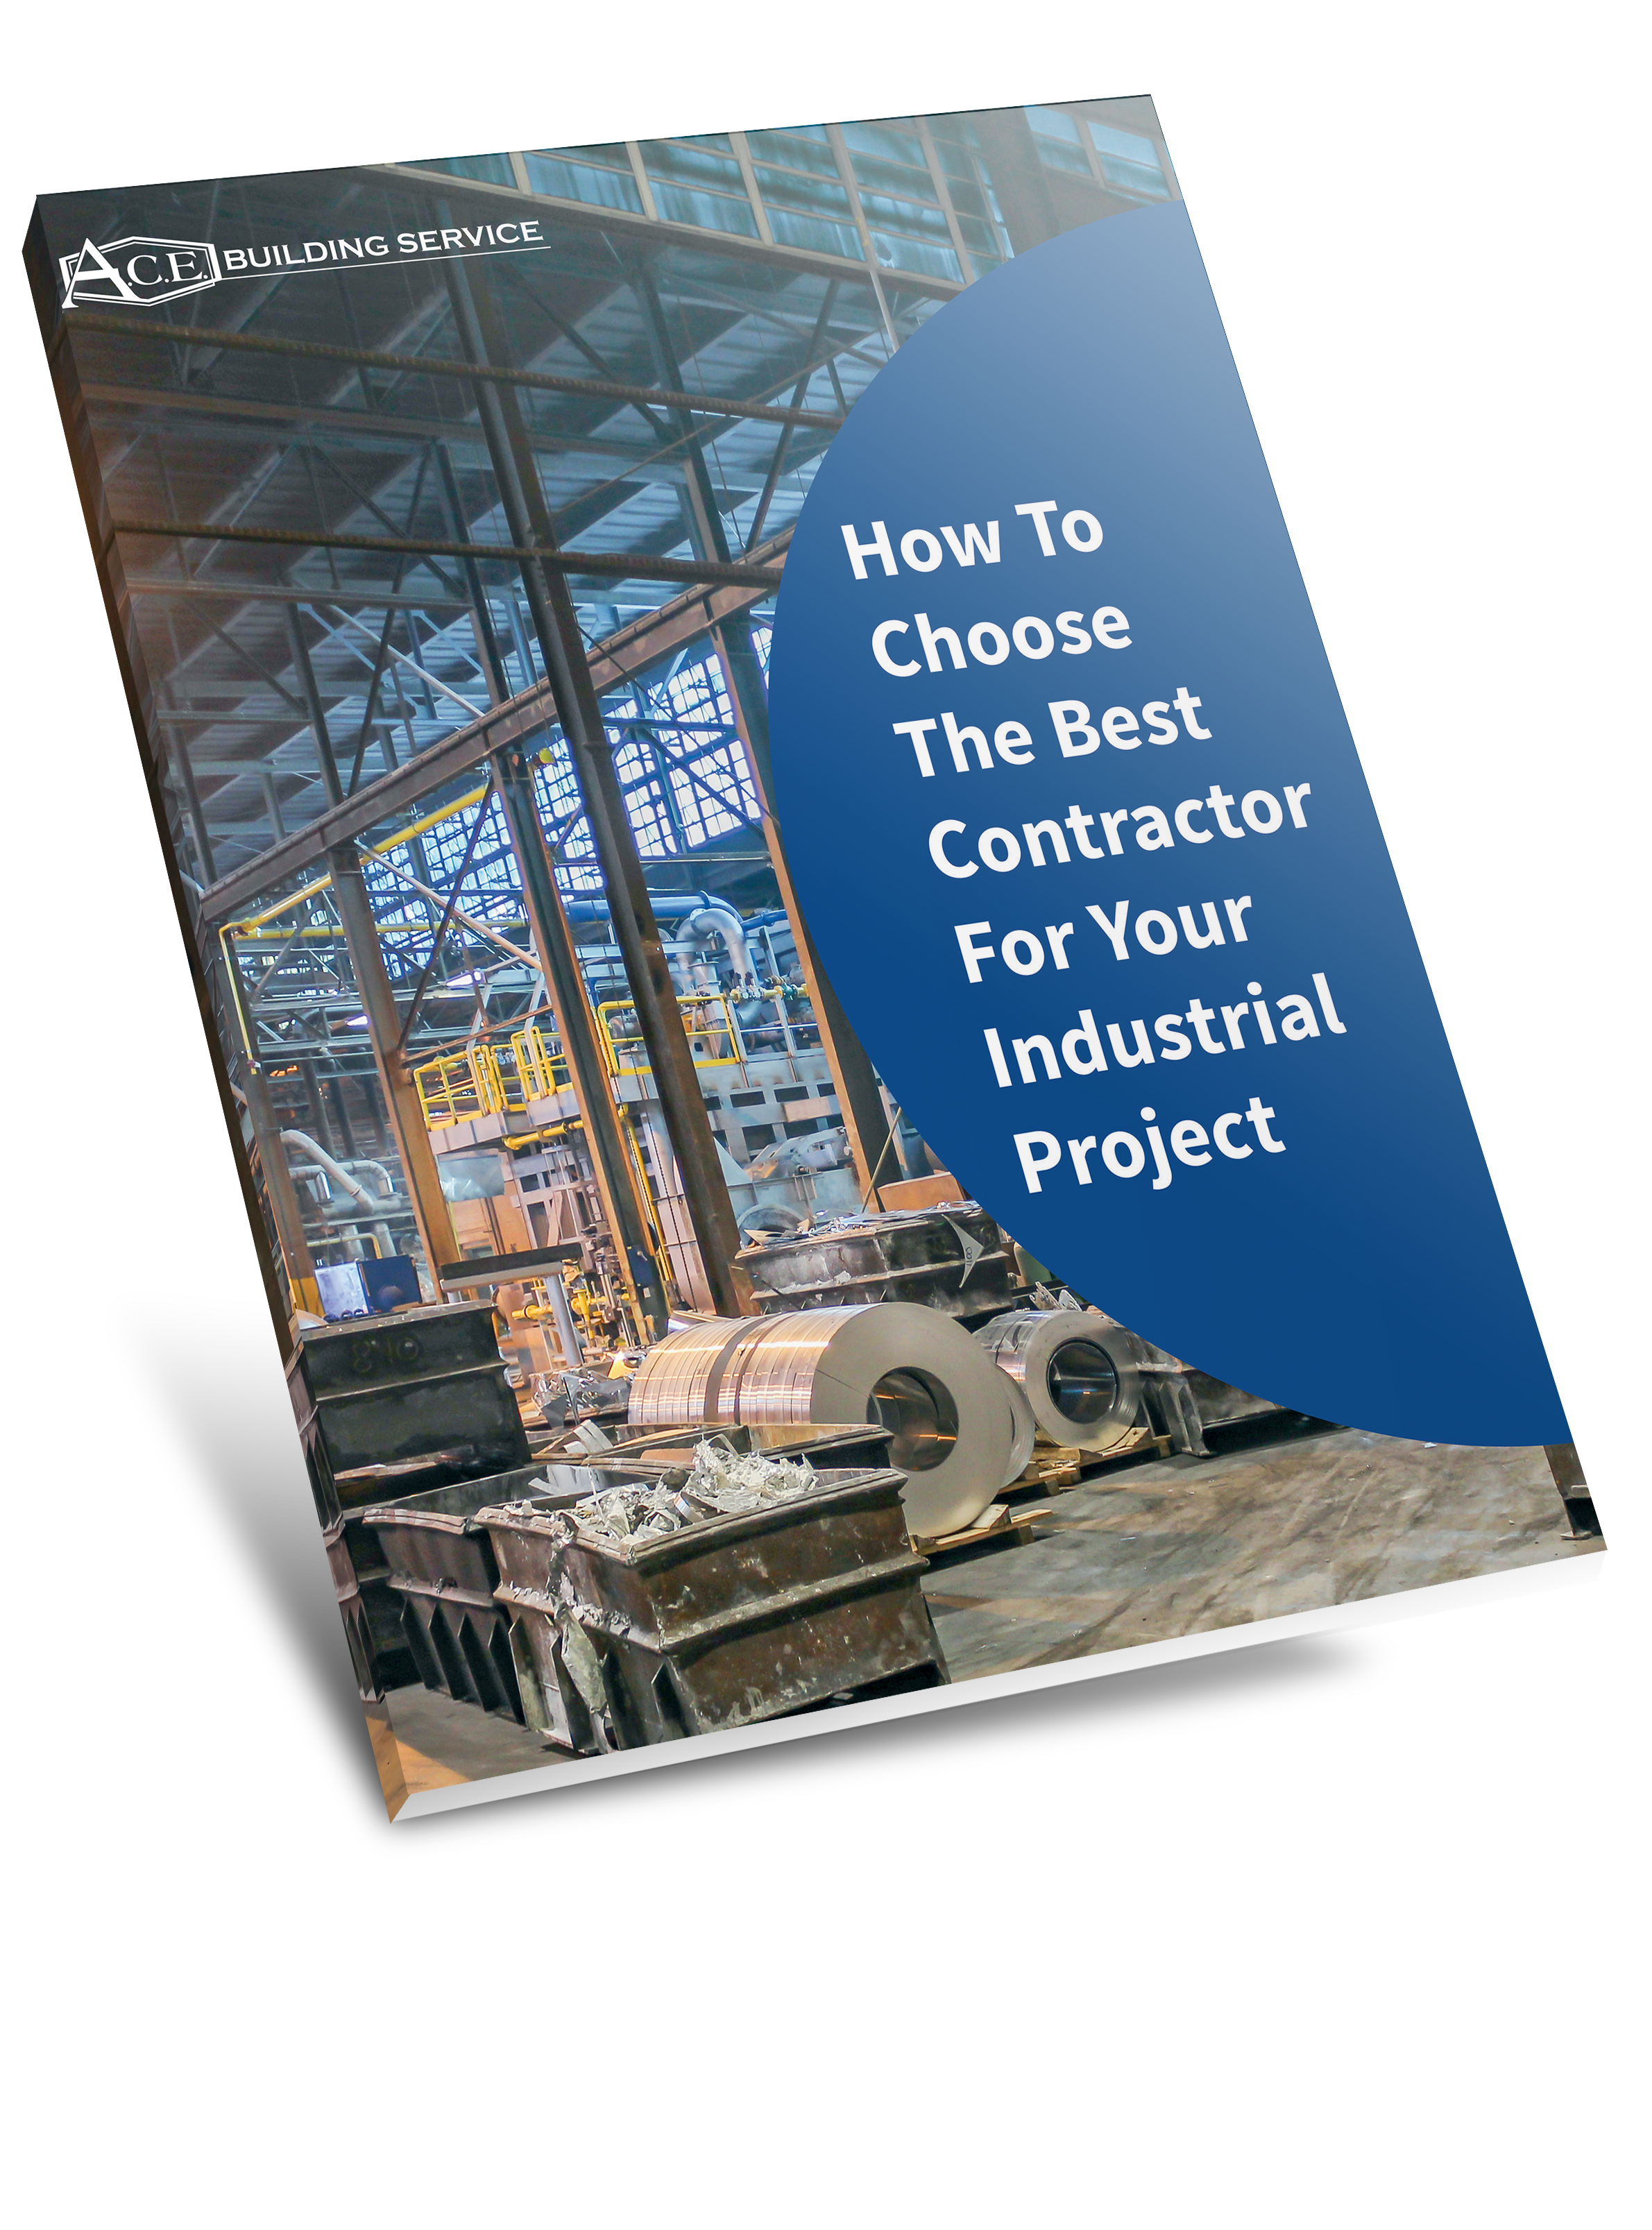 How To Choose The Best Contractor for Your Industrial Project | A.C.E. Building Service | Green Bay, Manitowoc, Sheboygan